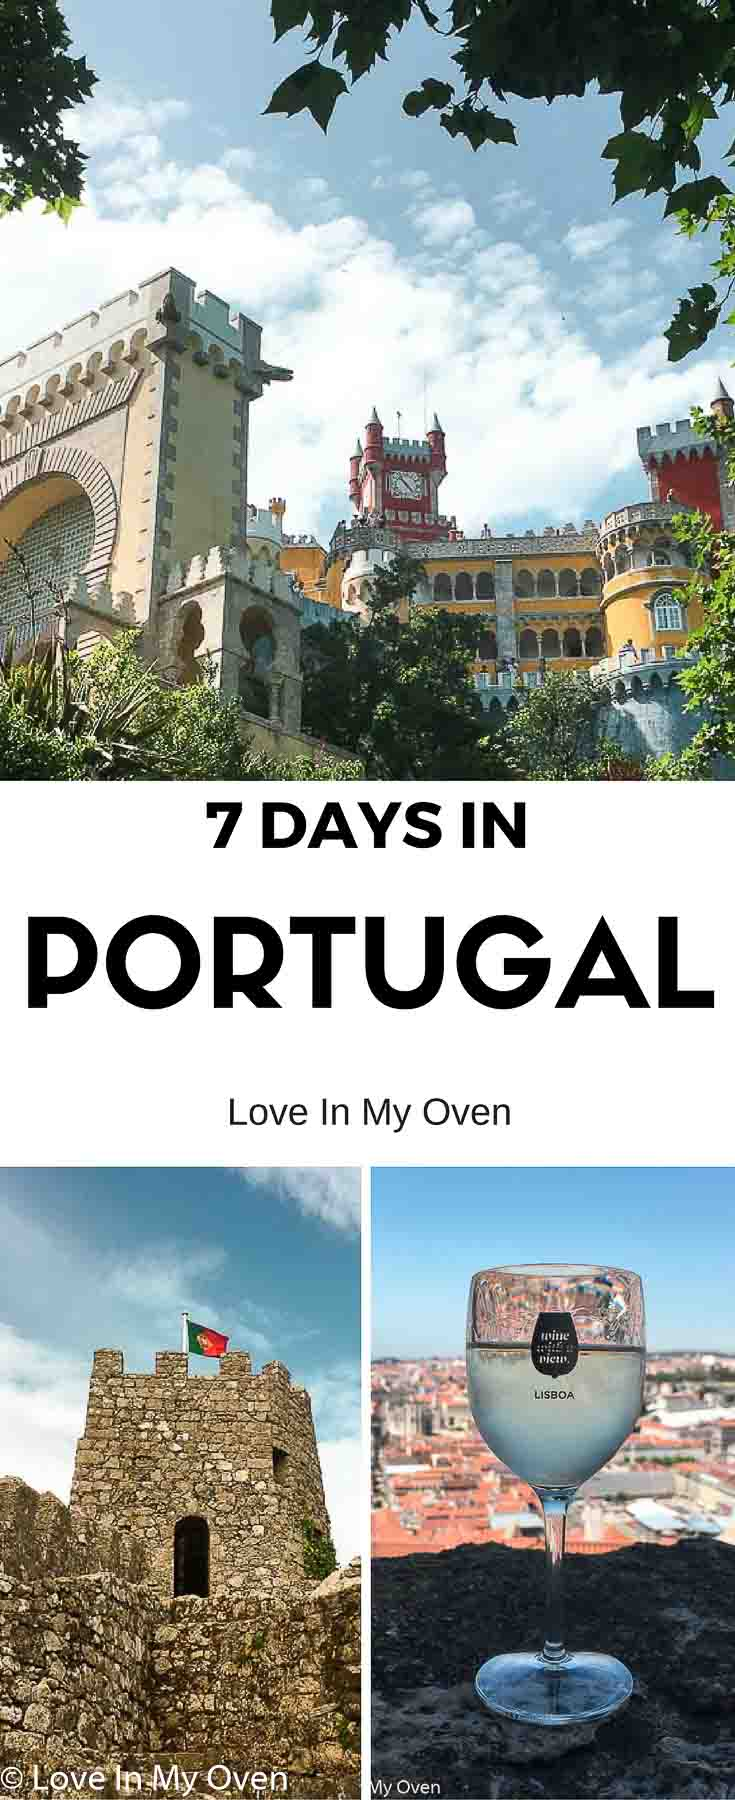 Food, wine, beaches and more. Portugal has it all!